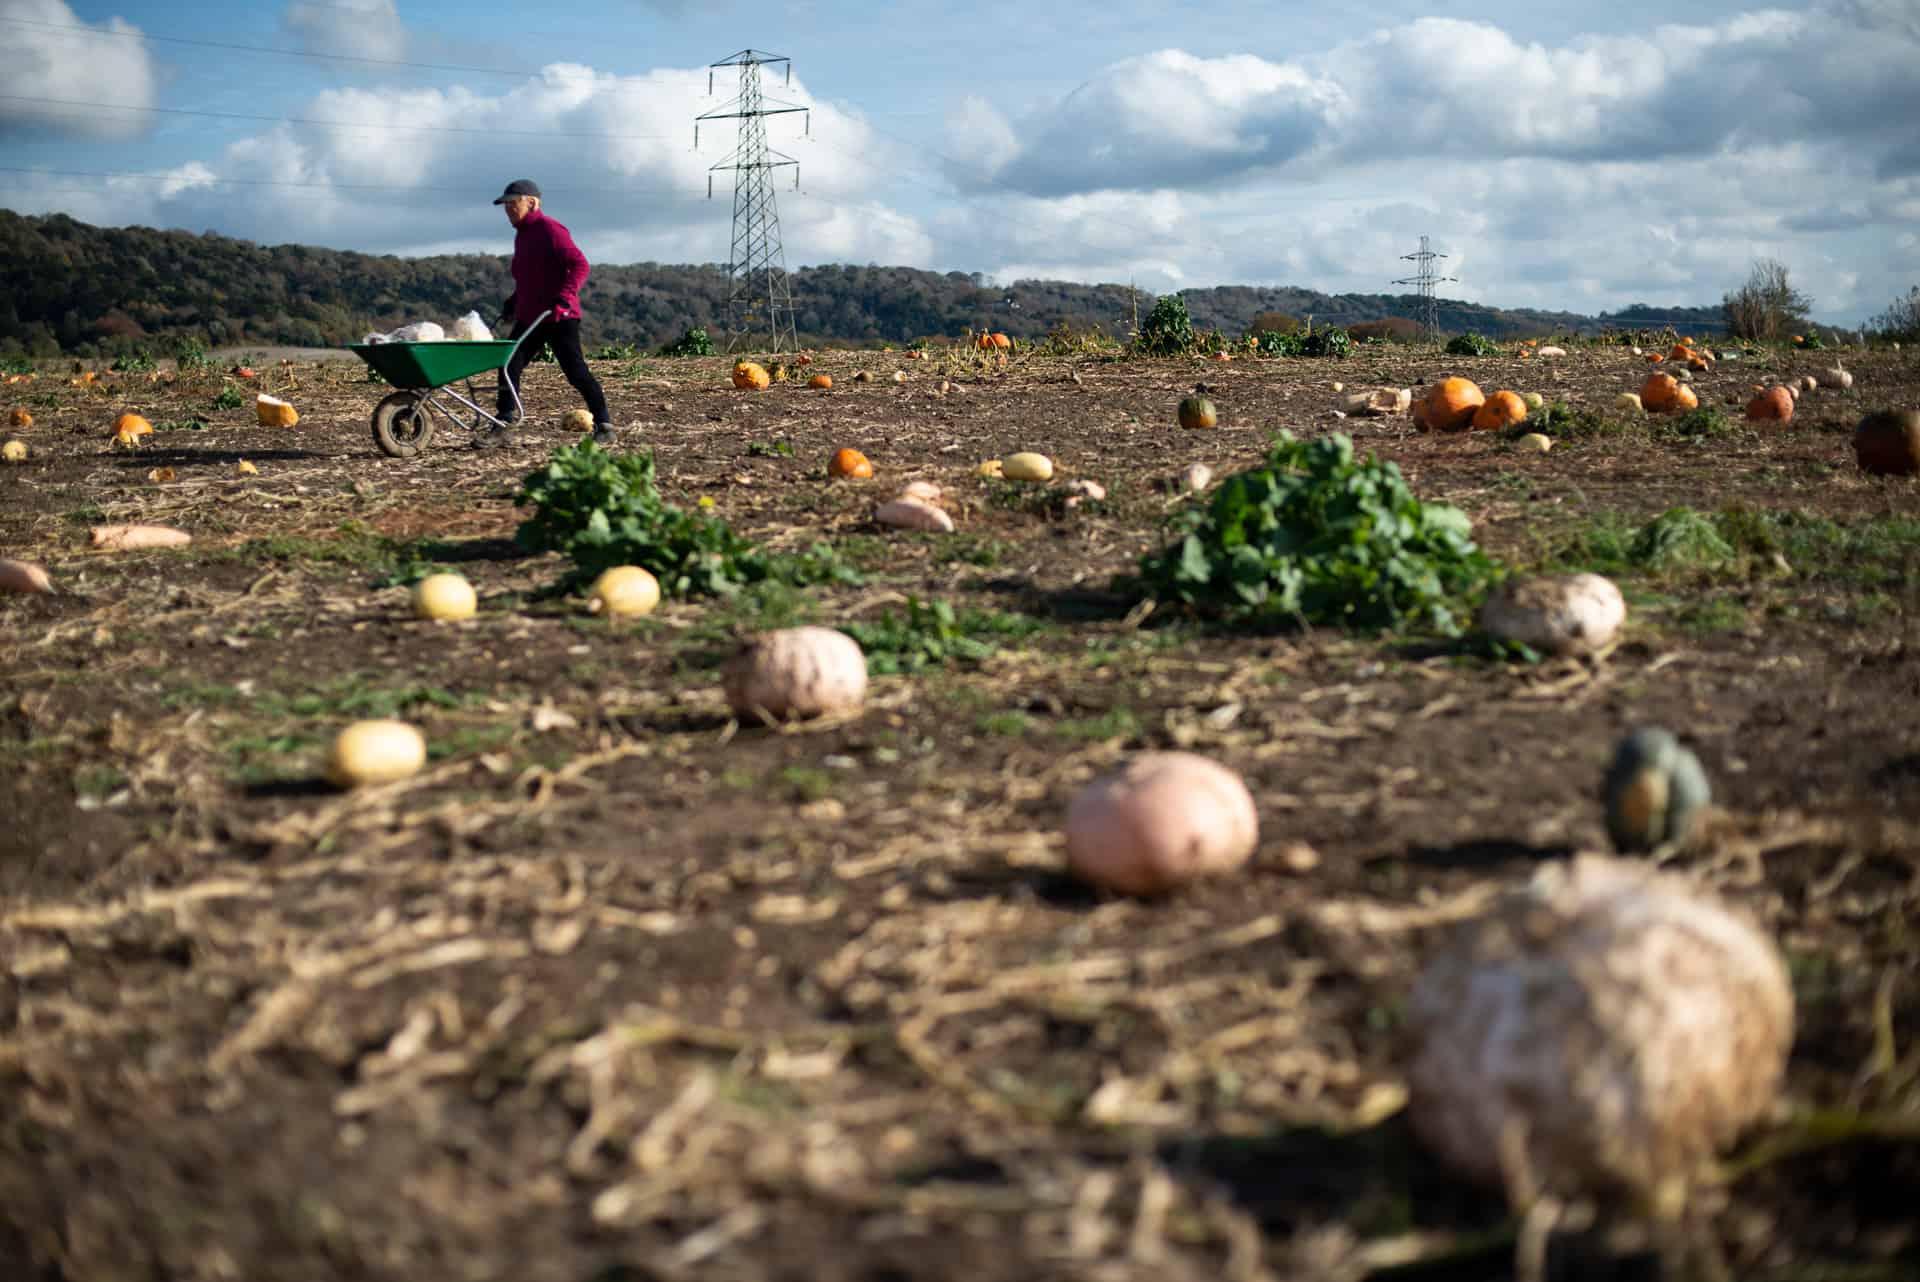 Gleaning pumkins and squashes - Documentary Photography by Chris King for Open Eye Media